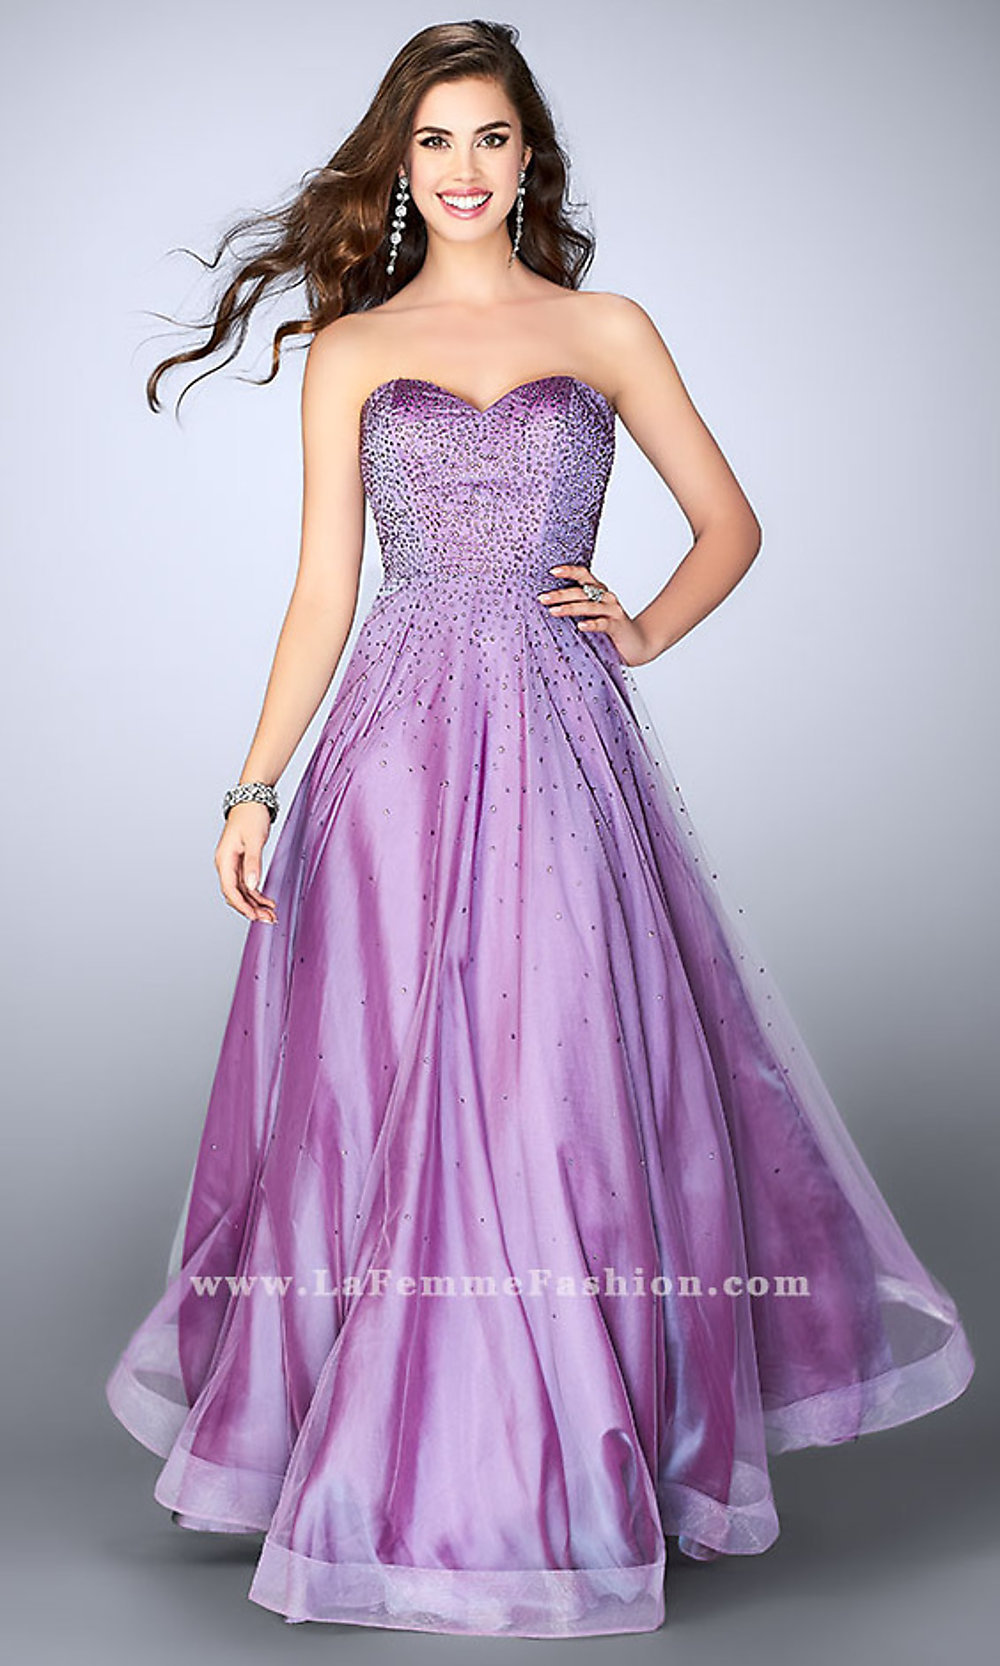 Celebrity Prom Dresses Sexy Evening Gowns Promgirl Lf 22952